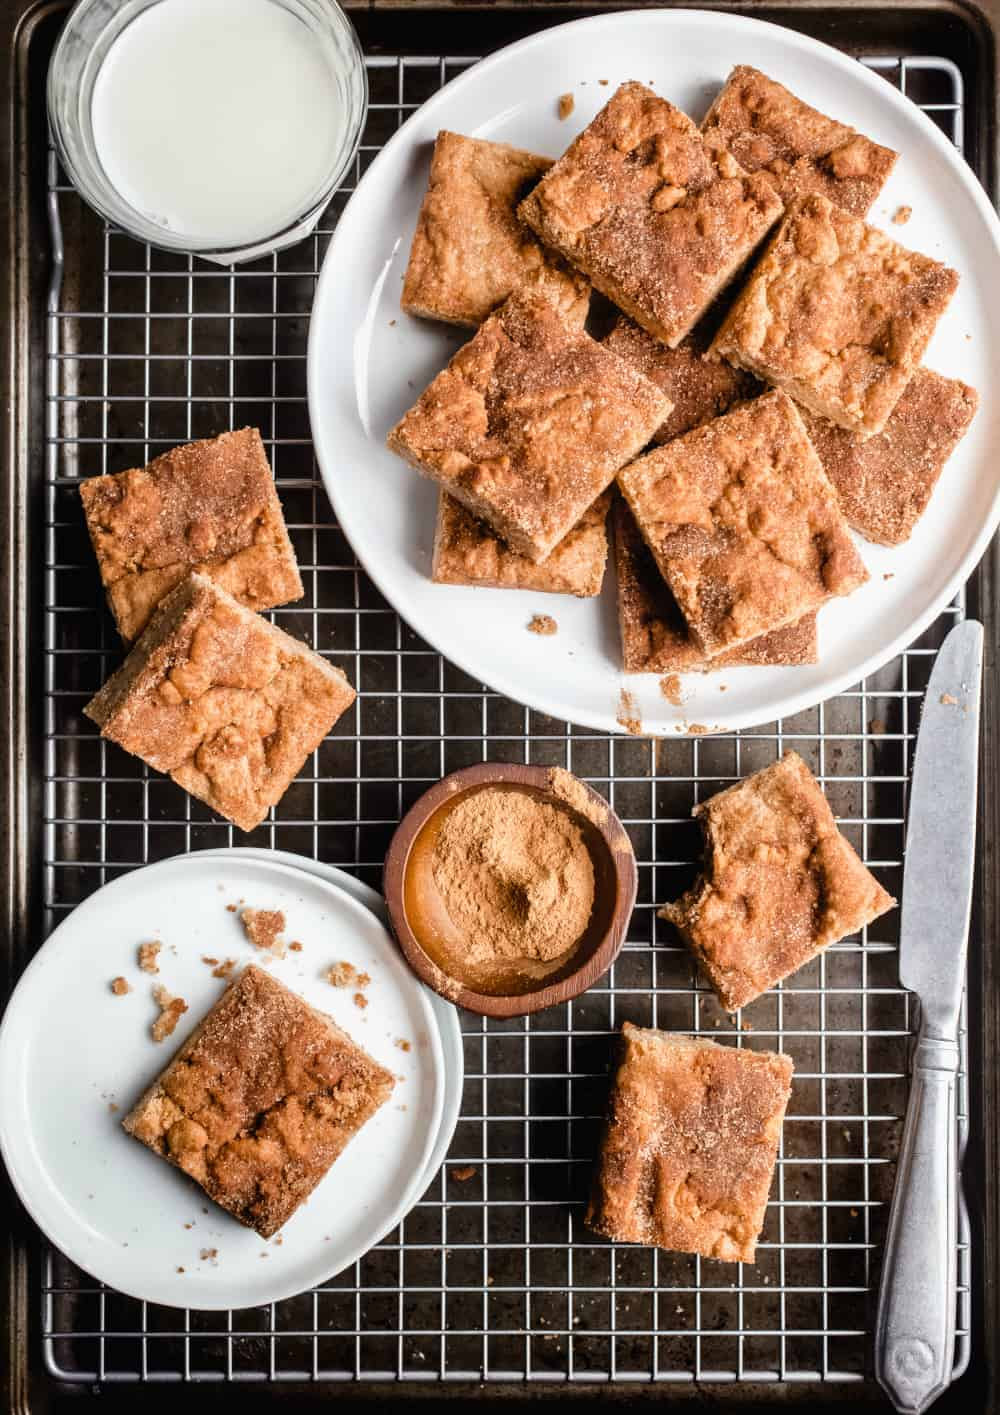 White plate filled with snickerdoodle blondies on top of a wire rack alongside several scattered blondies